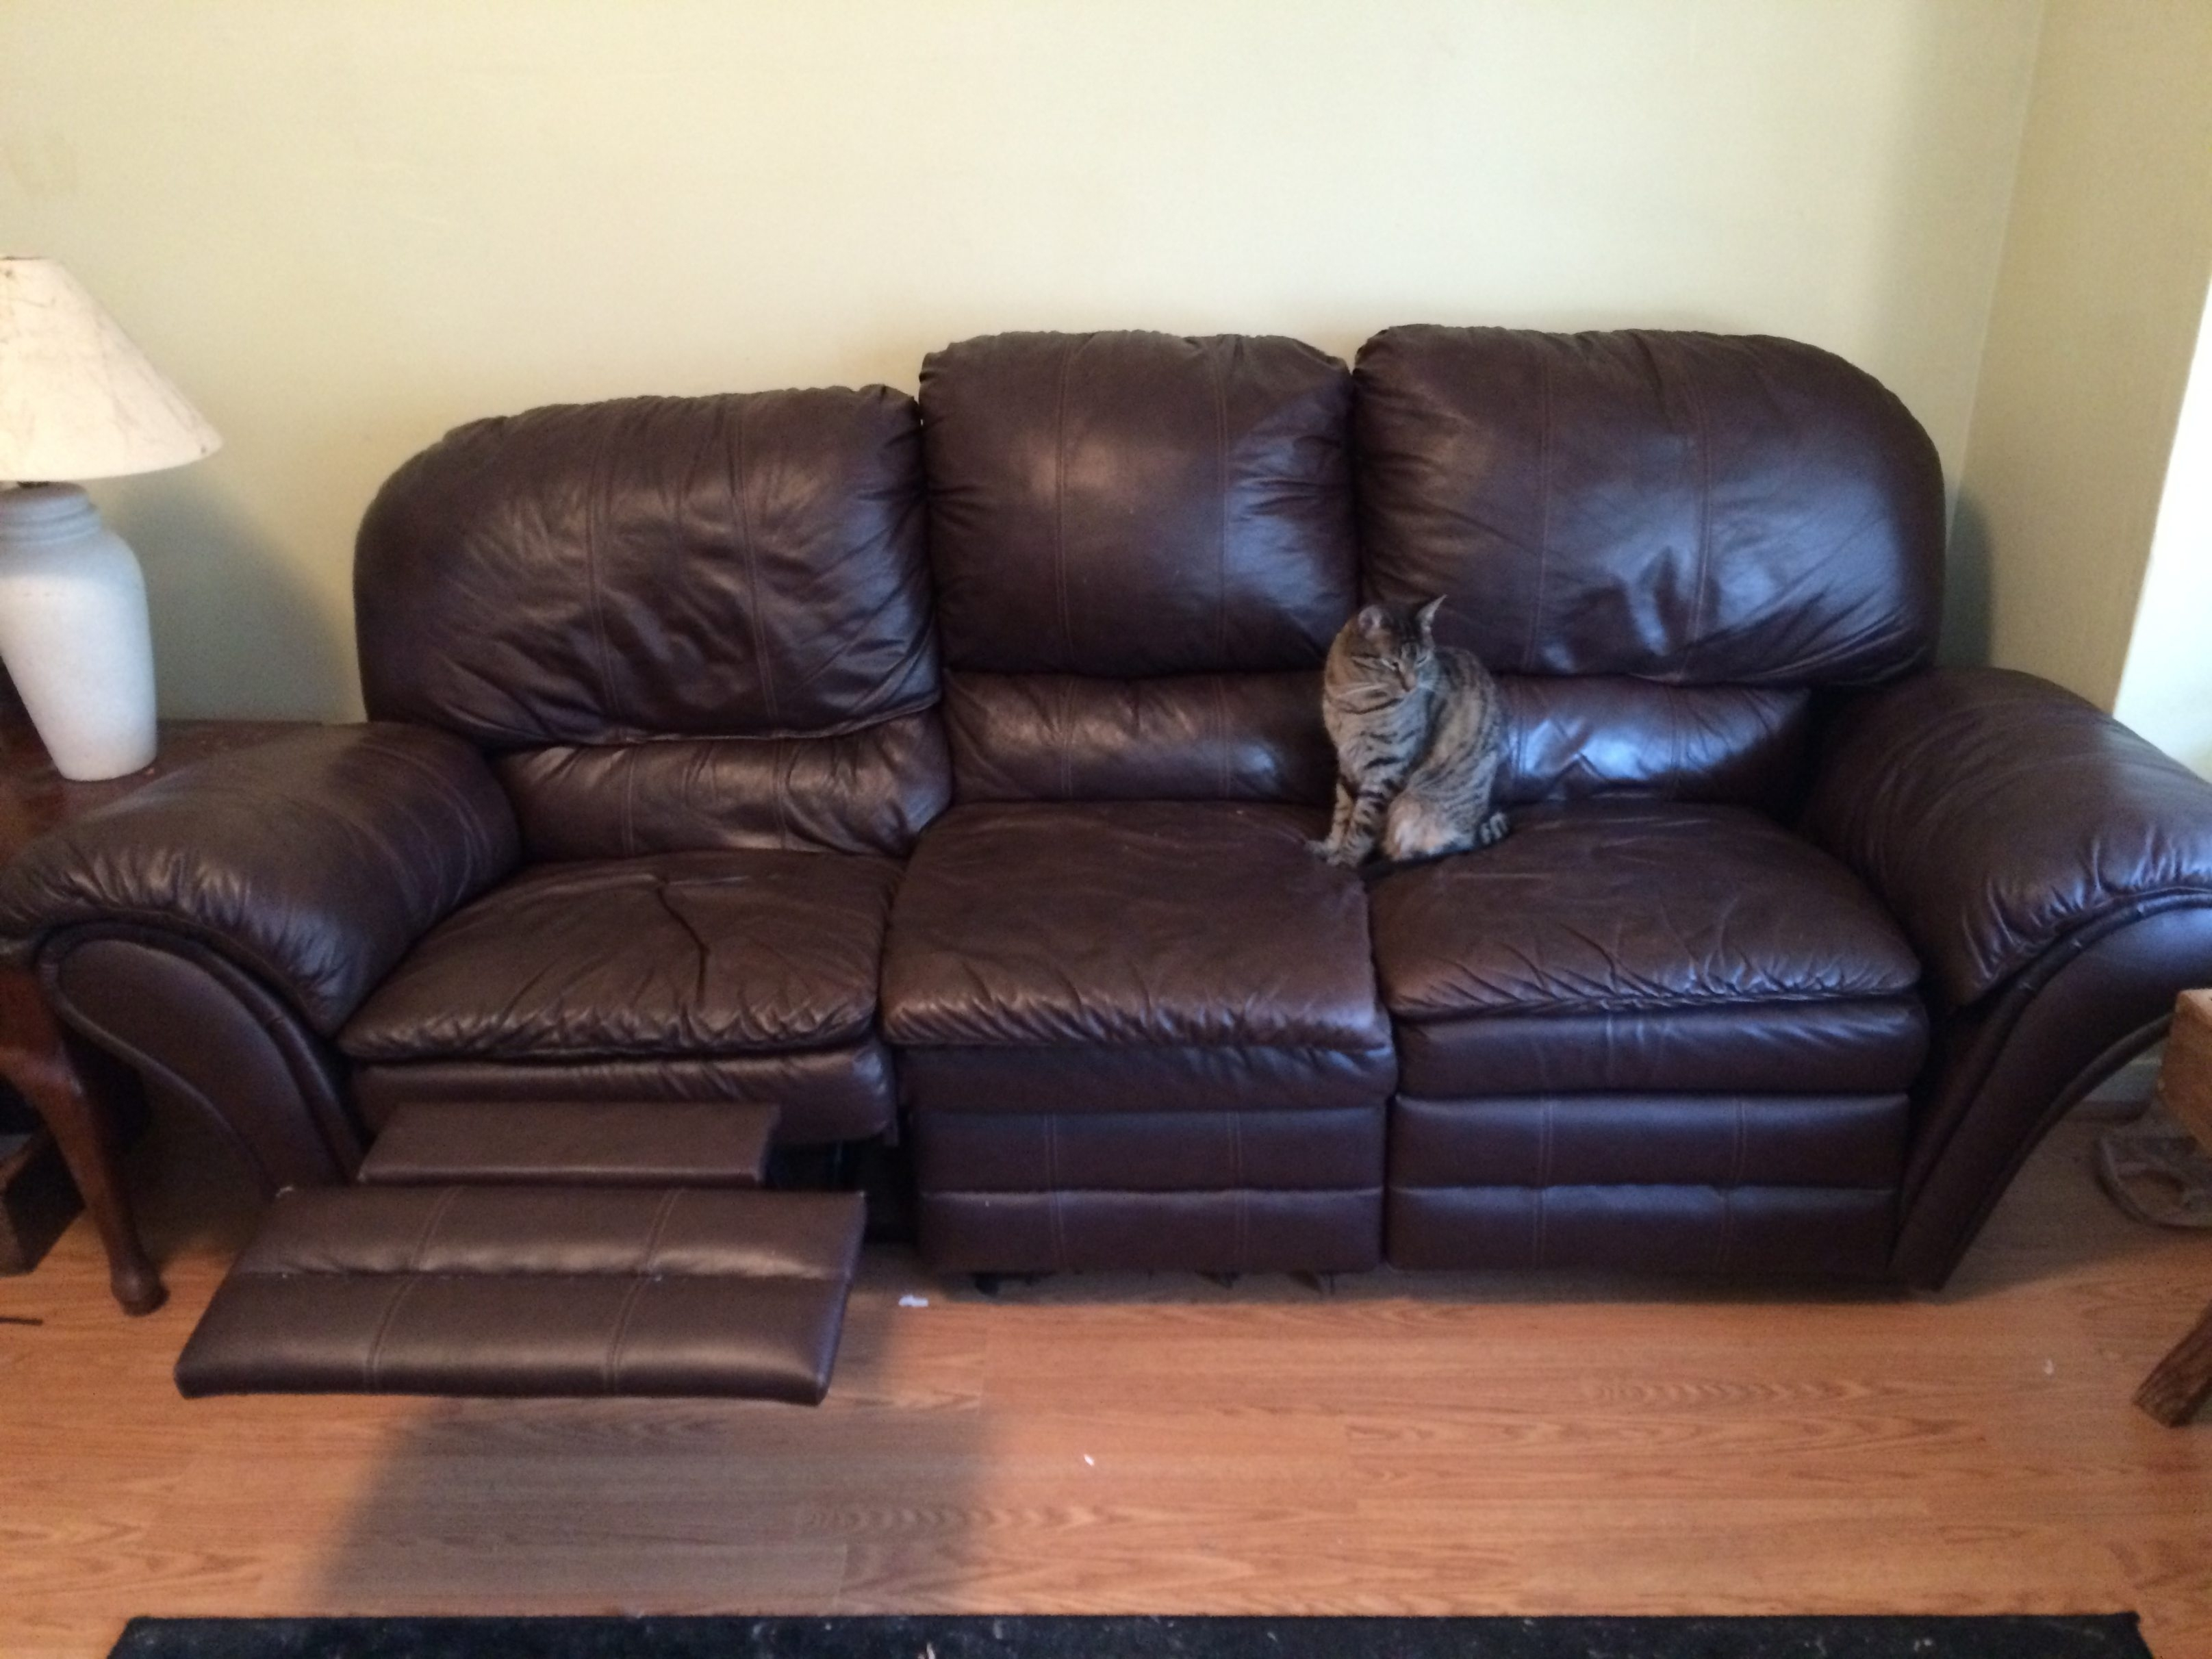 Free Sofa Craigslist #5 Awesome Leather Couch Craigslist 86 In Sofas Throughout Craigslist Leather Sofas (View 5 of 10)